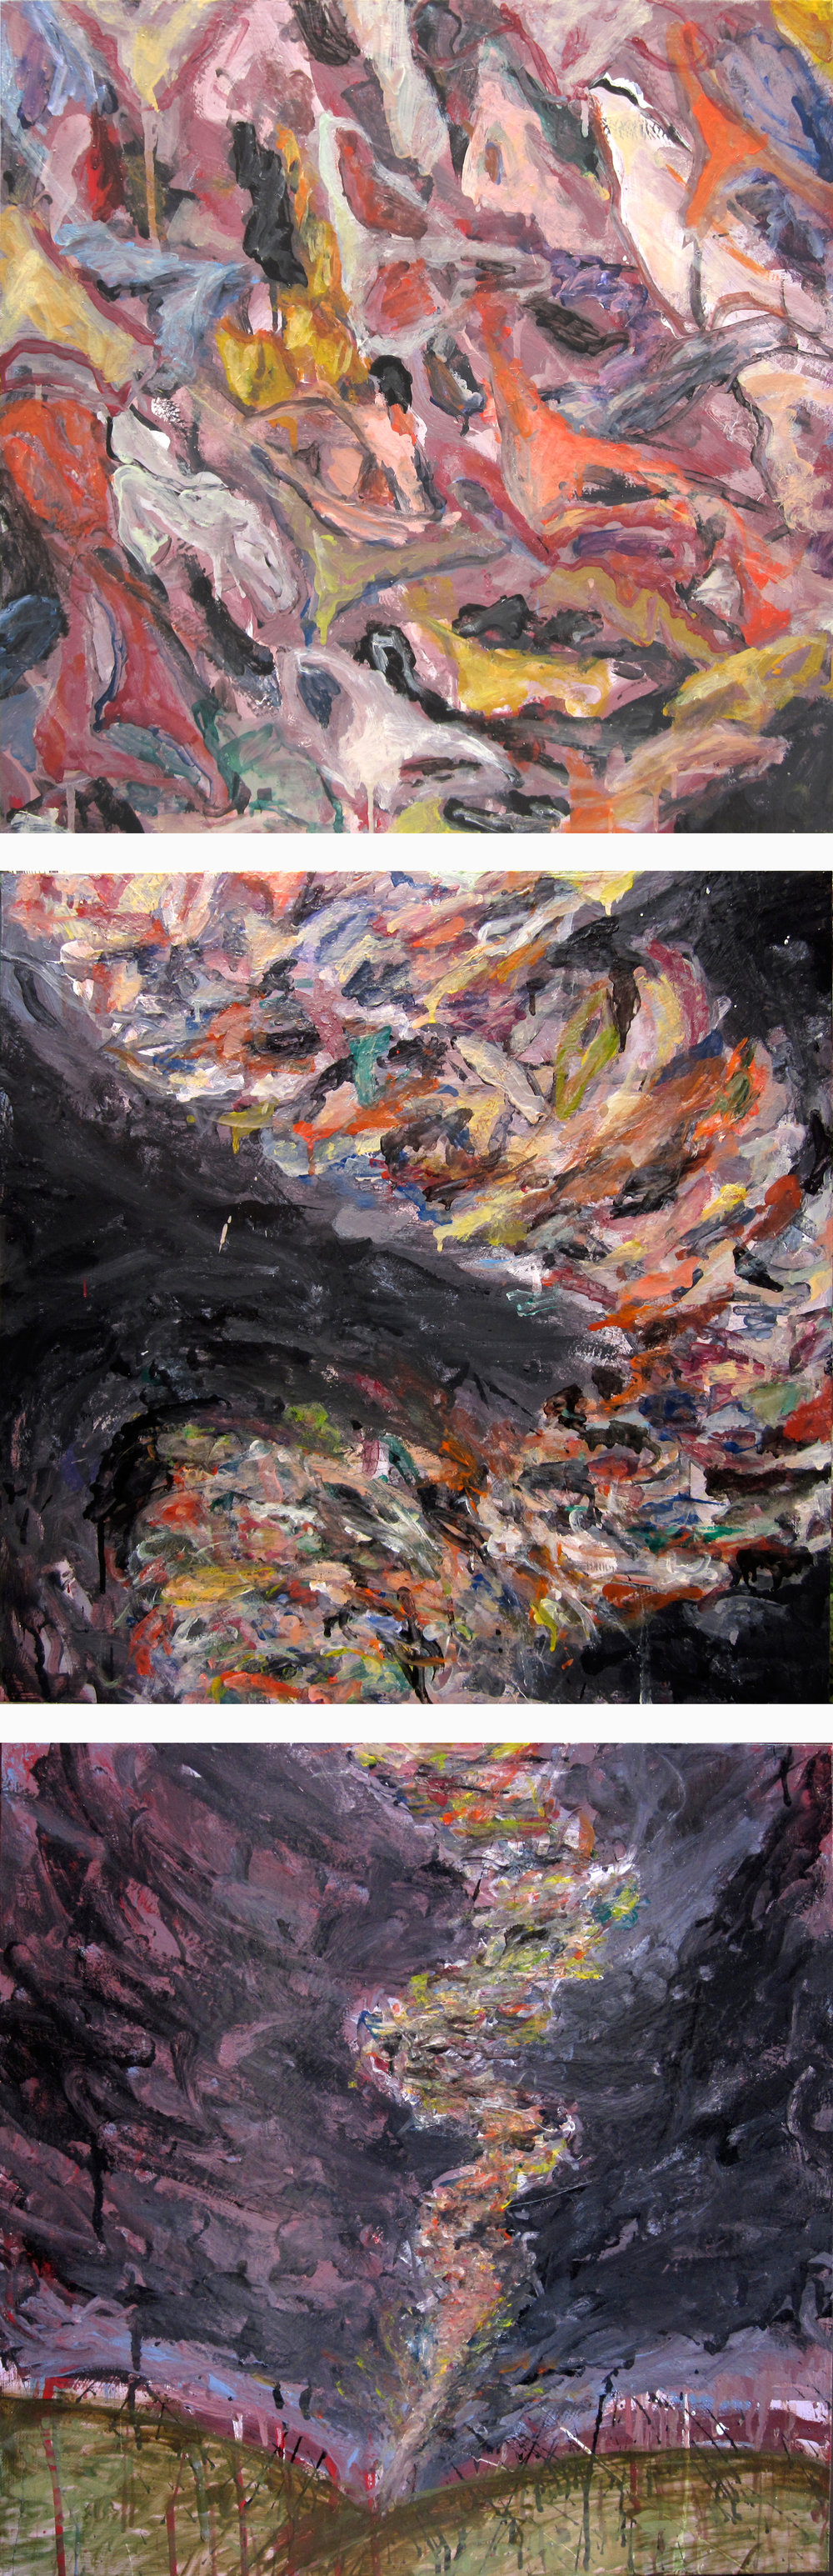 Dirty Panties Tornado (Painting Series)